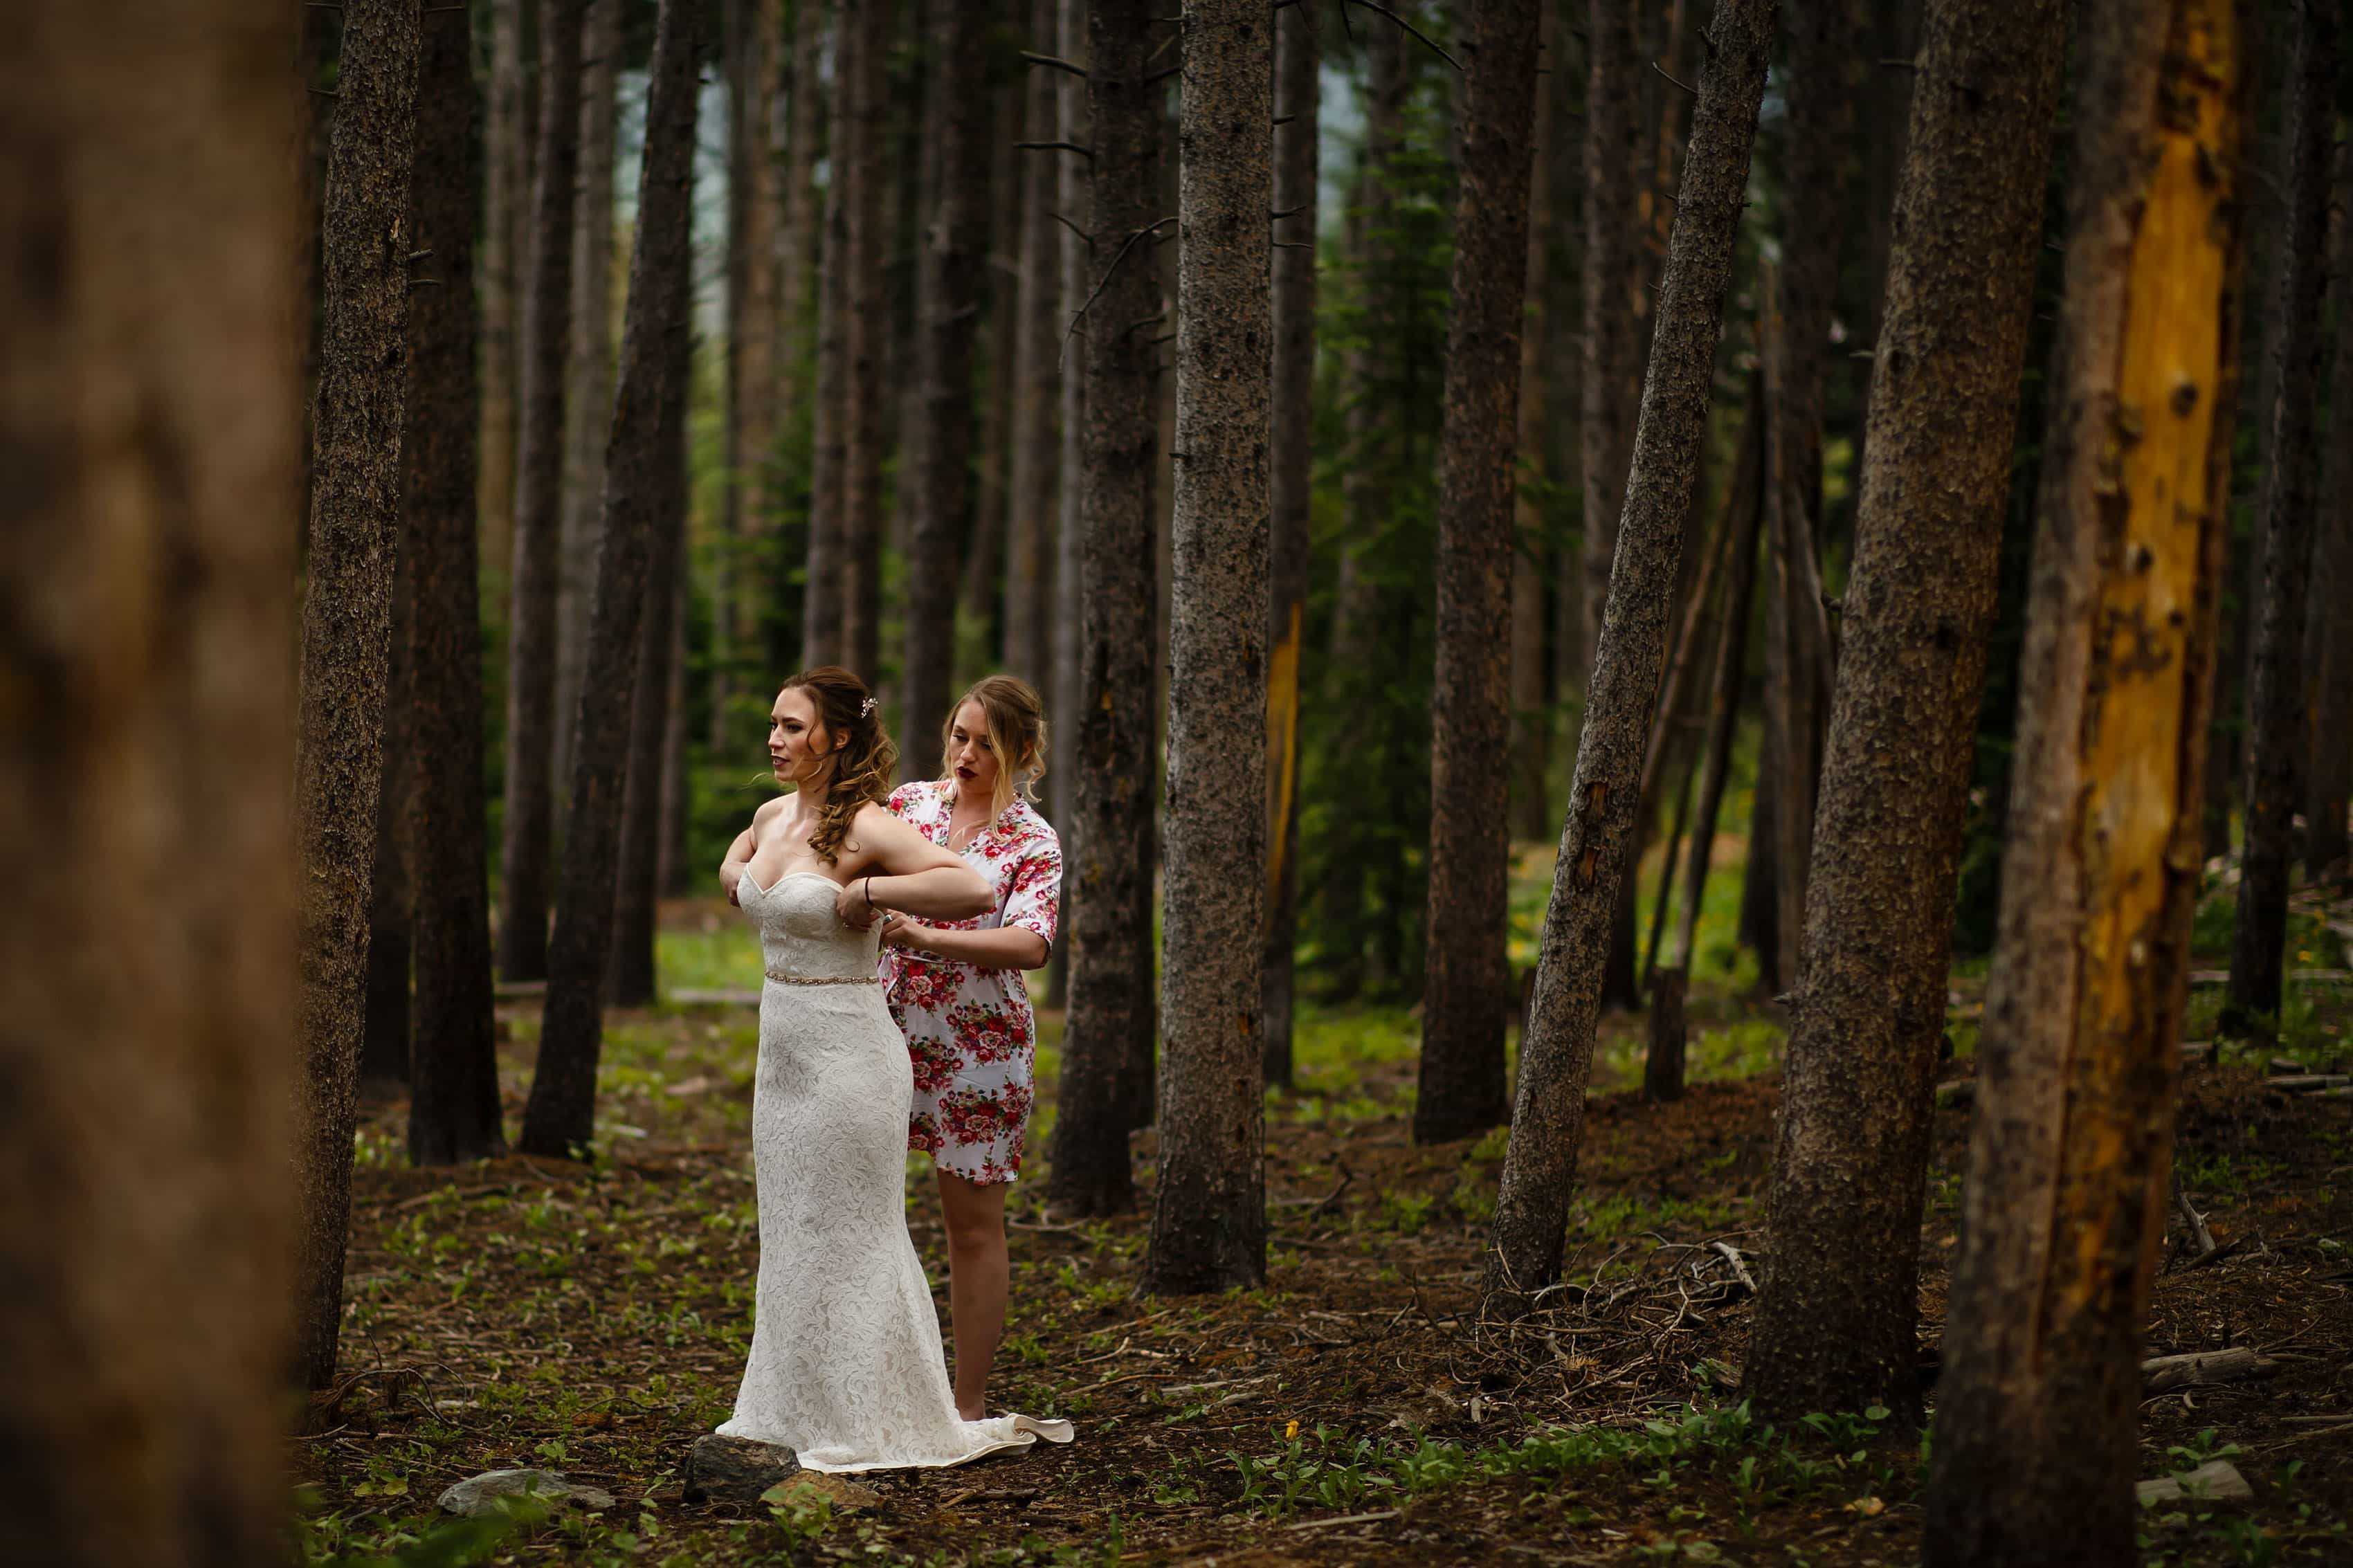 A bride puts on her wedding dress in the woods in Breckenridge